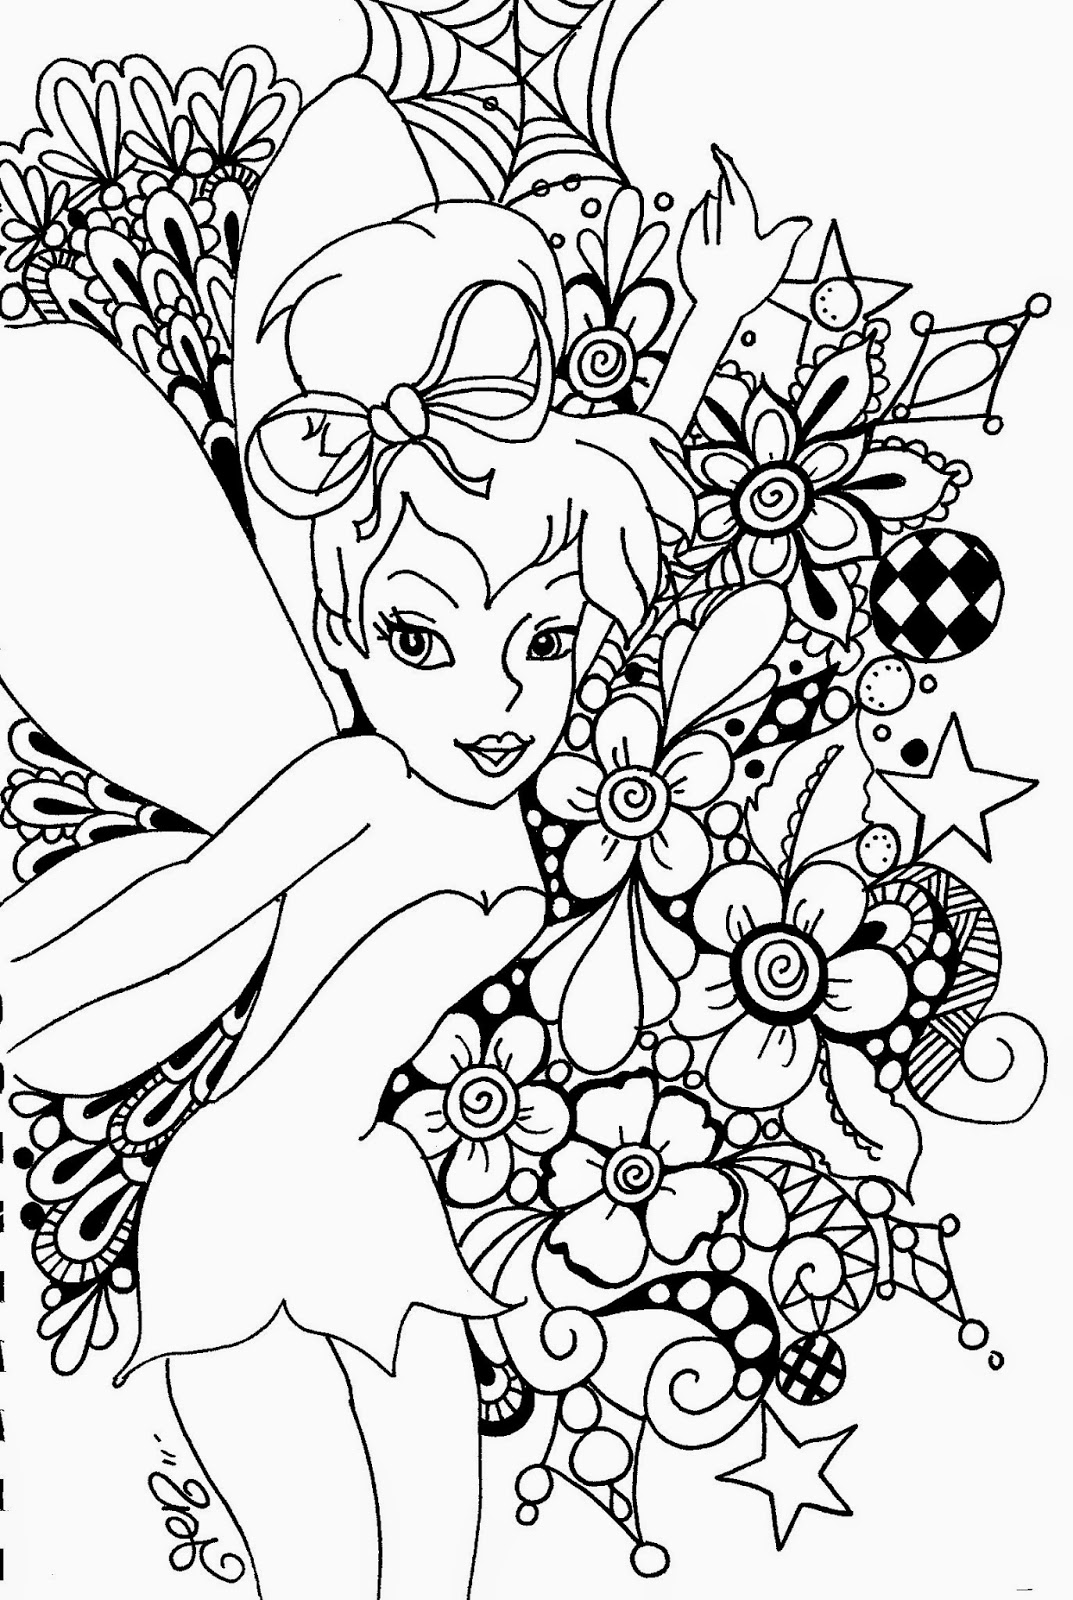 tinker bell coloring pages coloring pages tinkerbell coloring pages and clip art tinker bell coloring pages